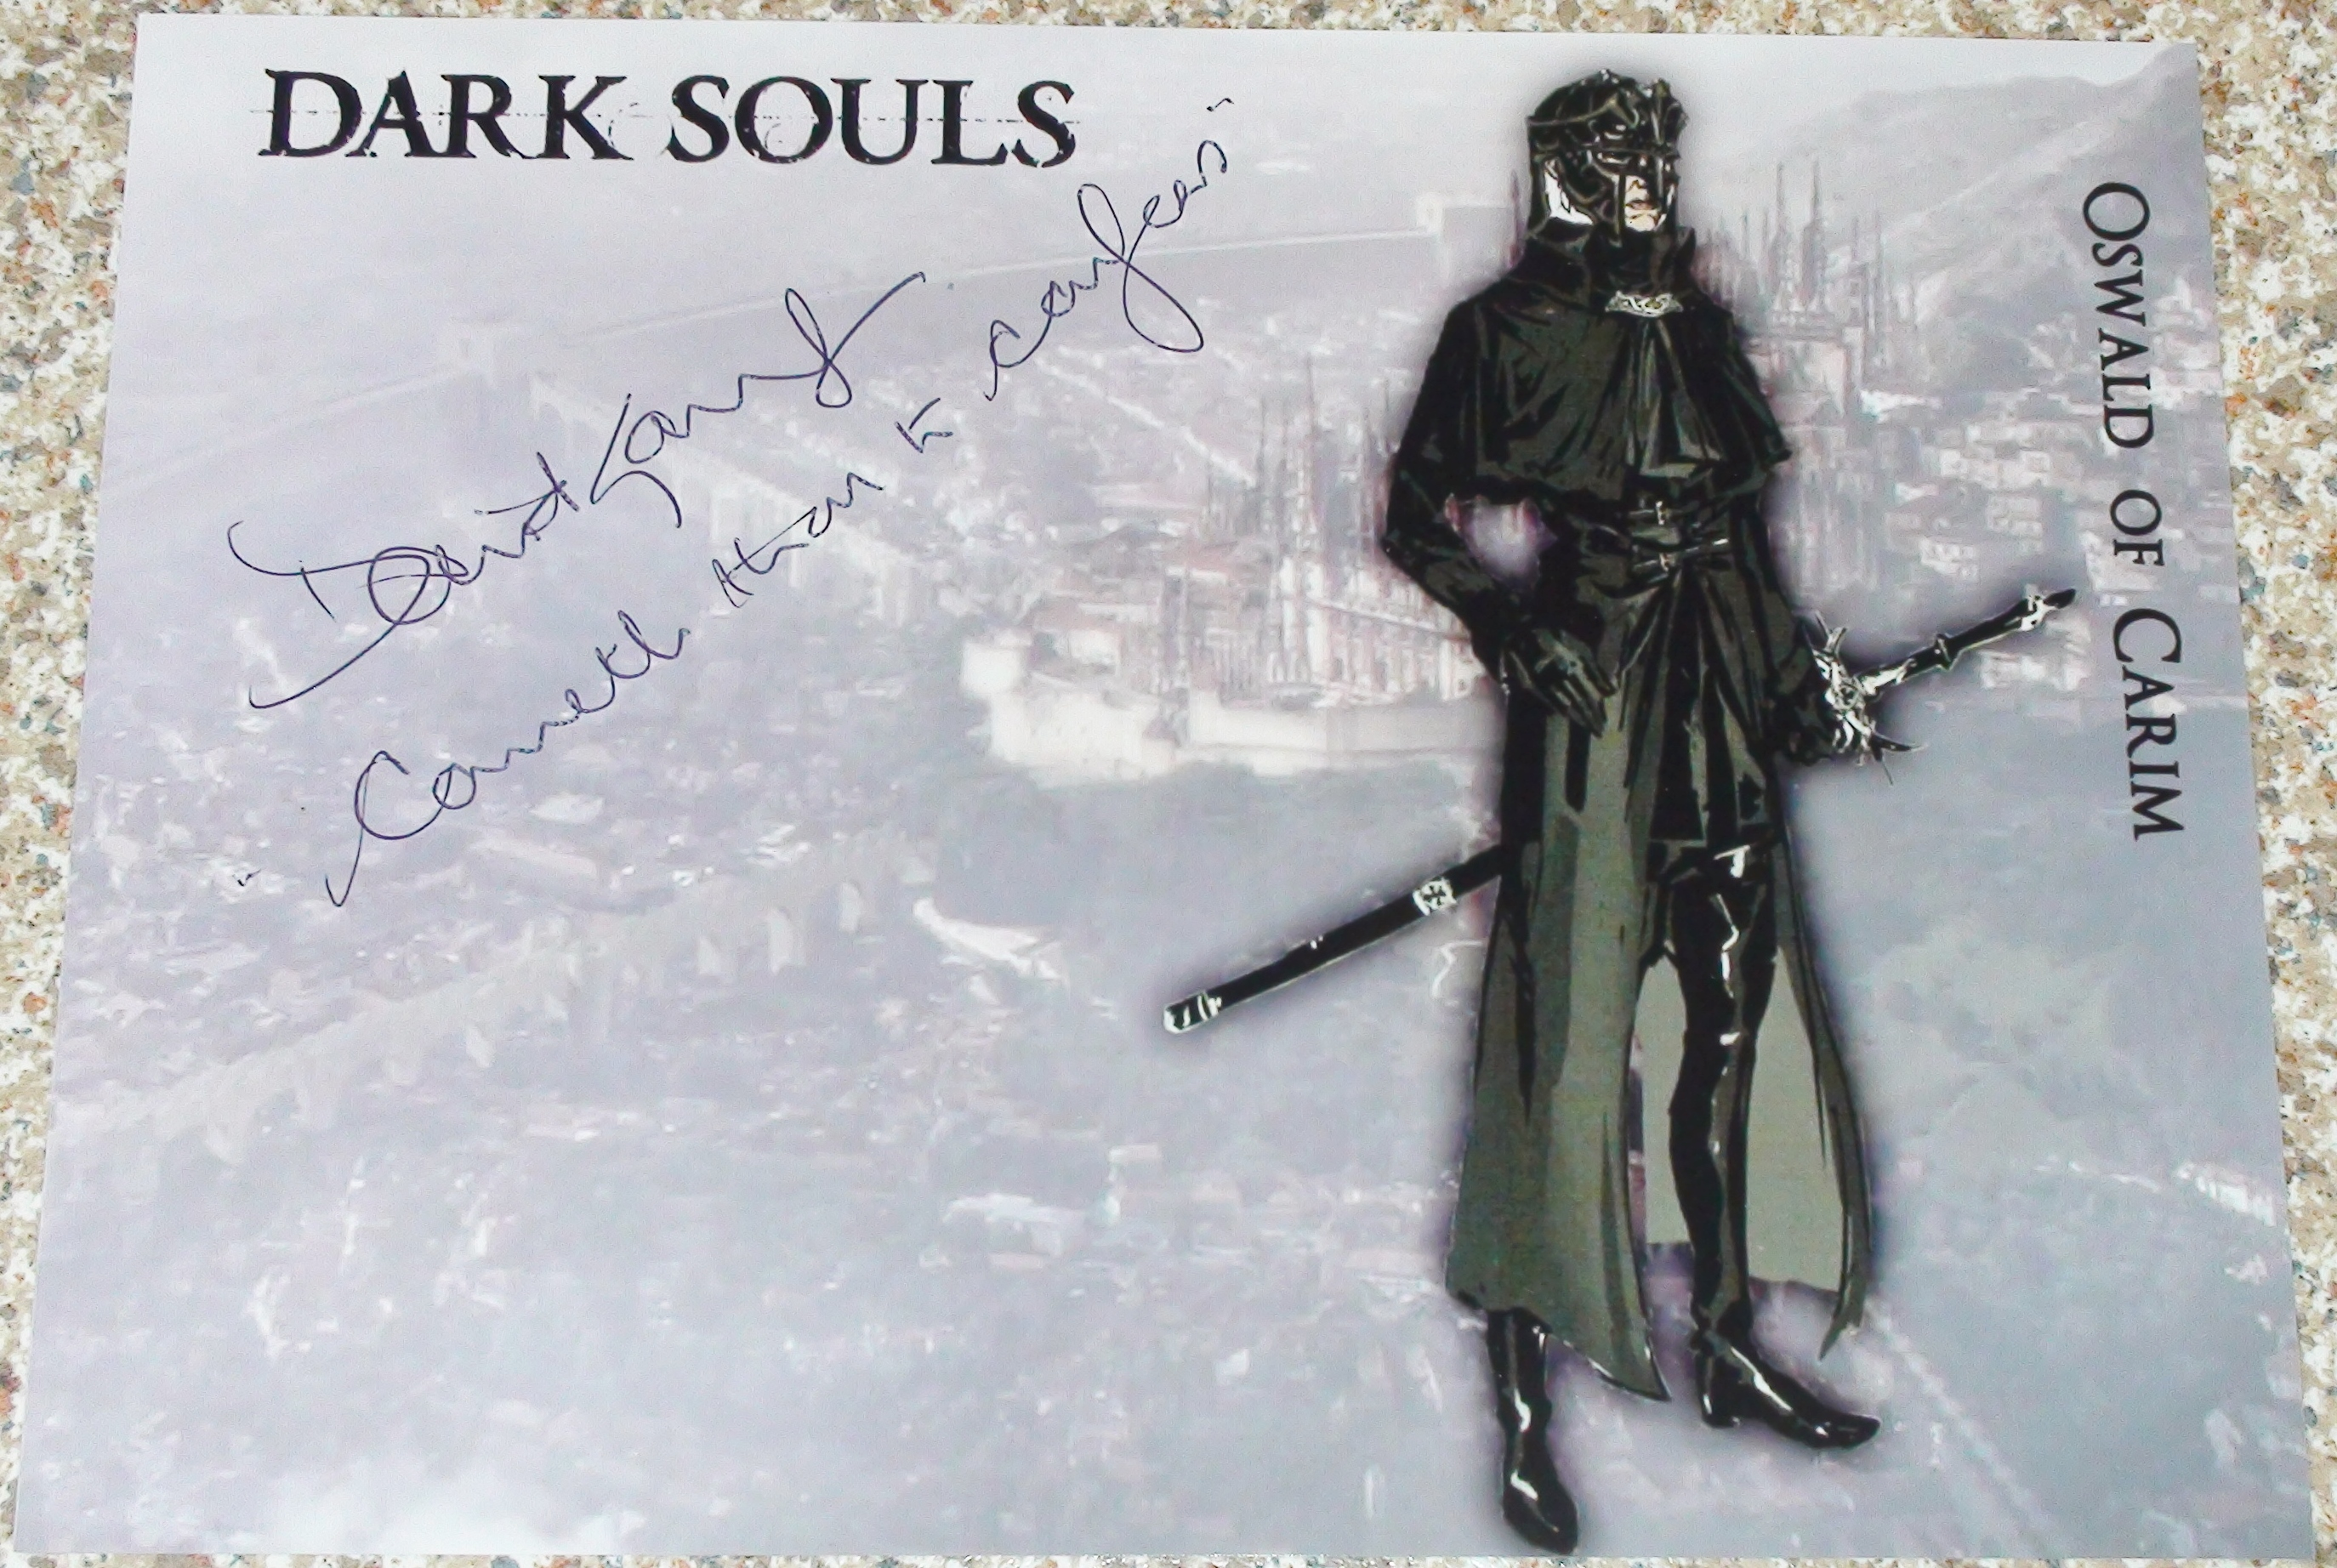 Dark Souls - David Gant